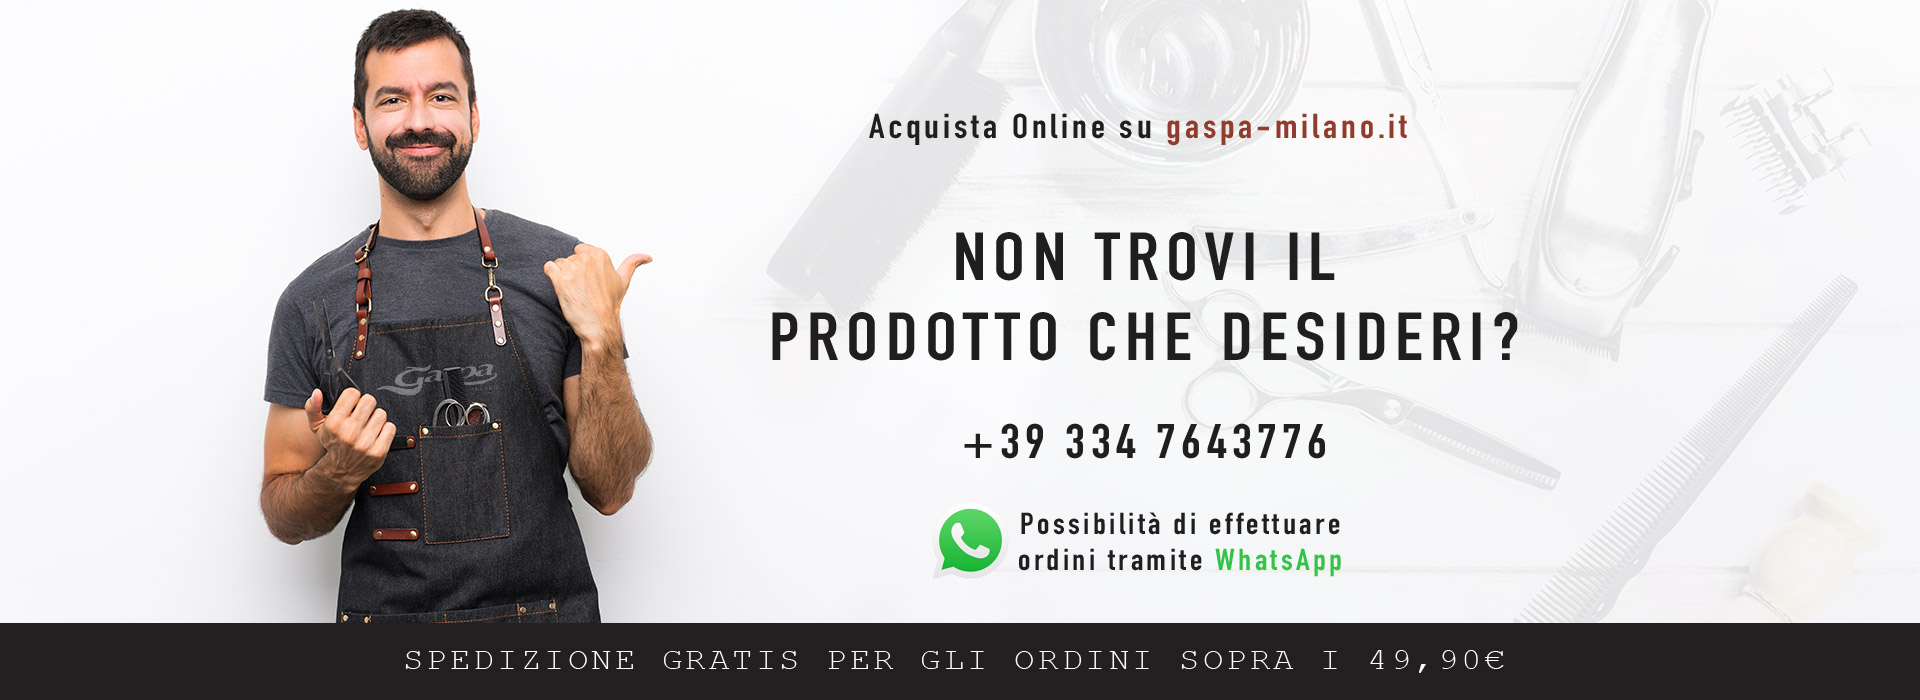 Acquista Online su gaspa-milano.it